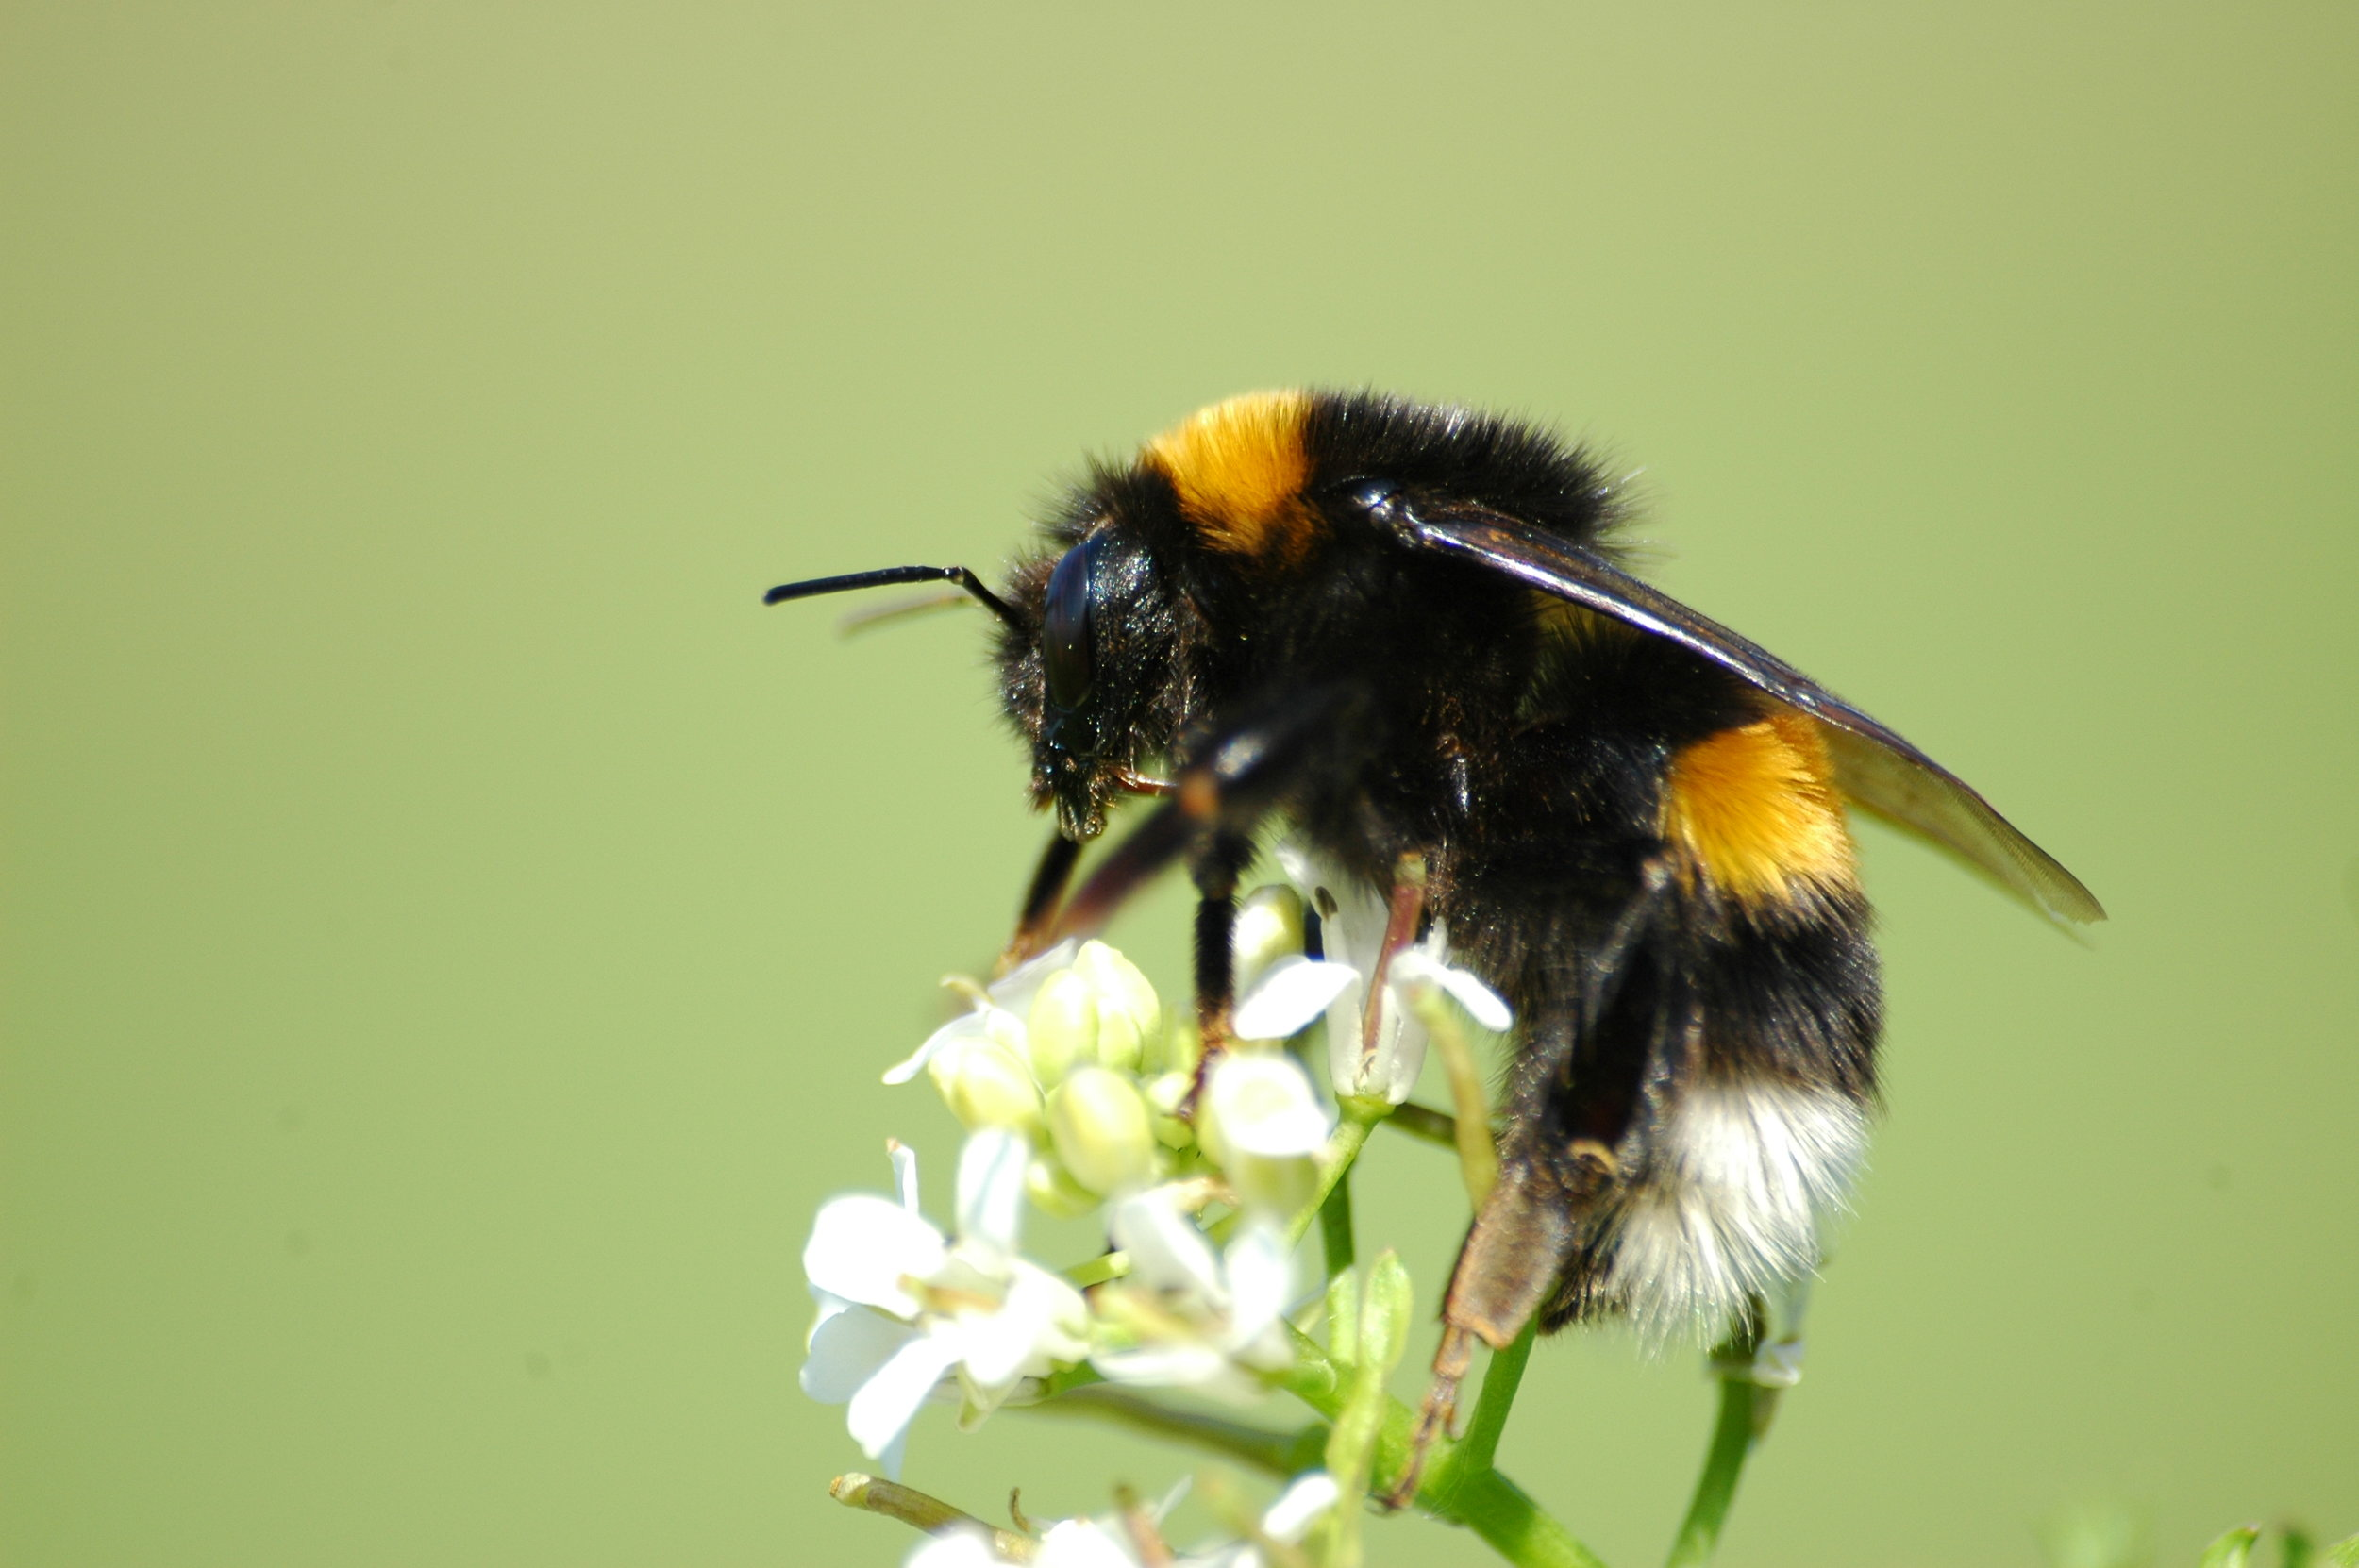 Bombus terrestris  was one of the most common floral visitors of  Helleborus foetidus.